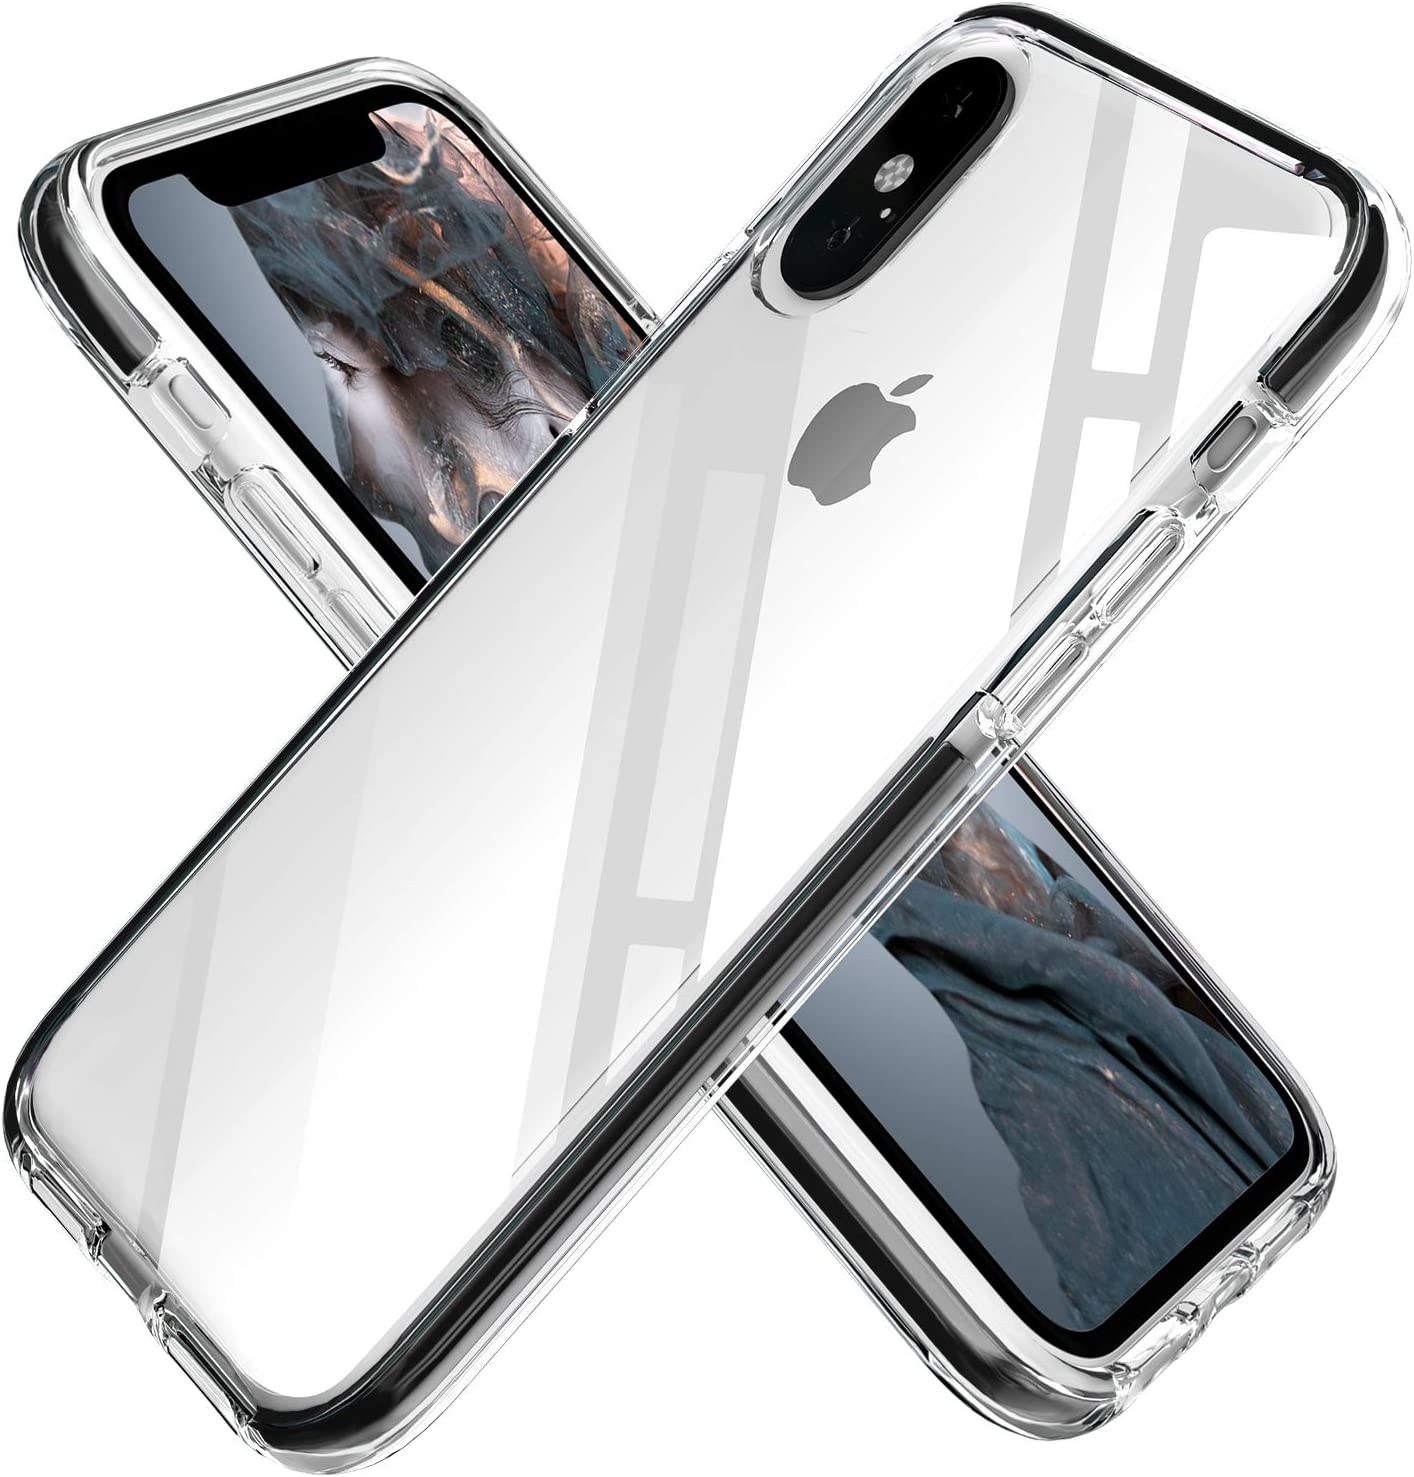 iPhone Xs Max Case Clear Anti-Scratch Anti-Slippery Transparent Shockproof Bumper Protective Case Cover Compatible with iPhone Xs Max 6.5in-2018 (Black)